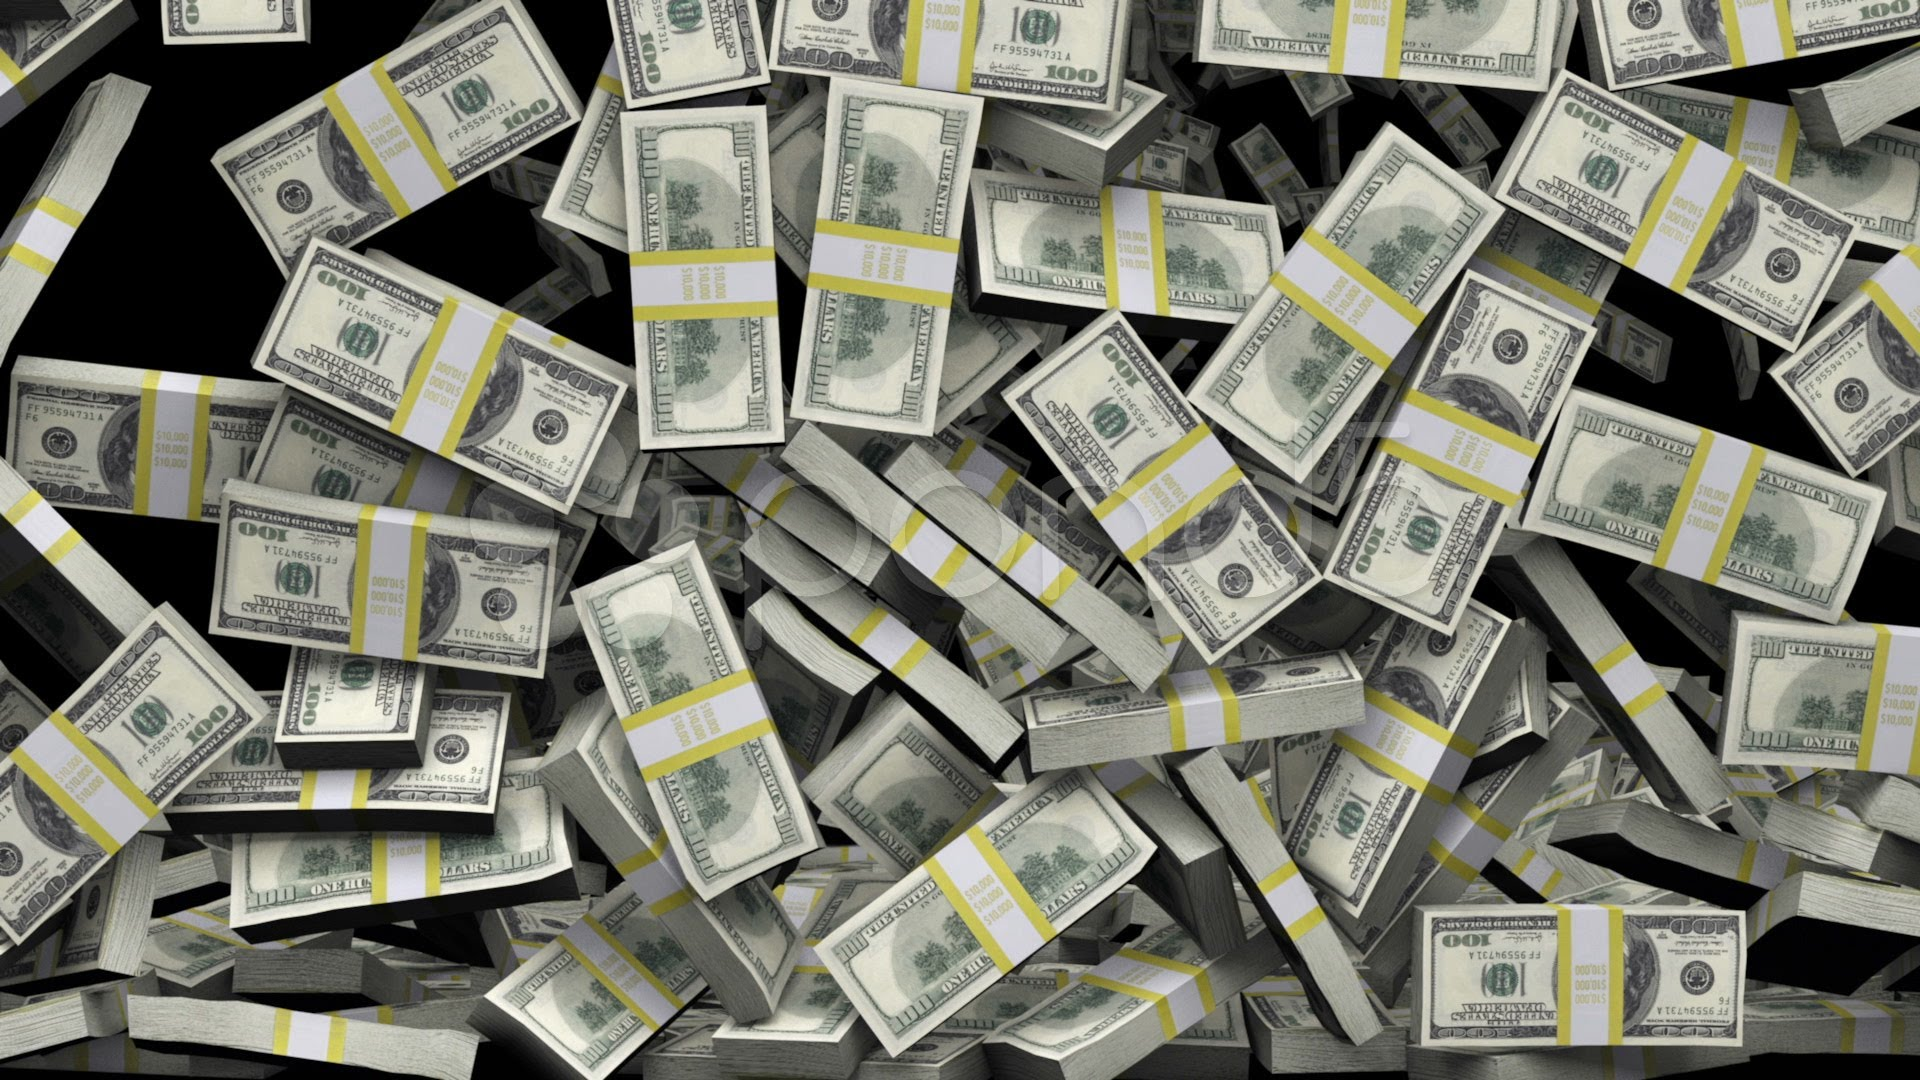 Free Download Money Stacks Wallpaper 1920x1080 For Your